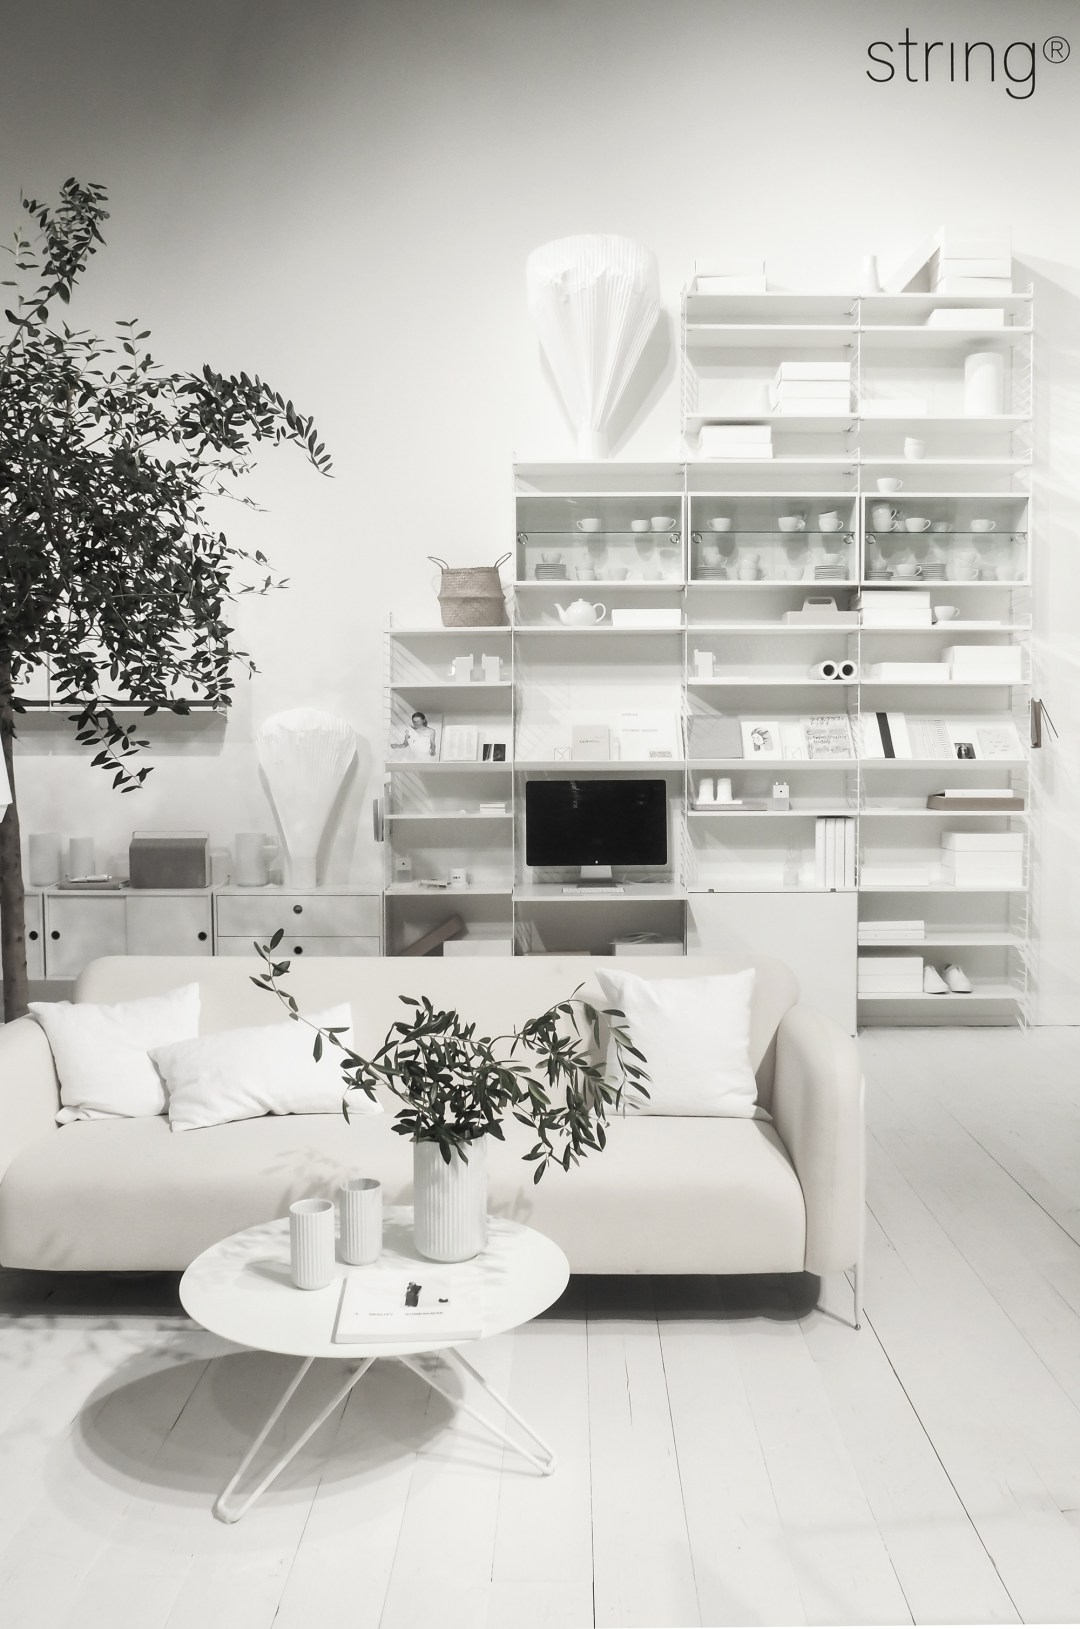 String furniture, Styled by Lotta Agaton